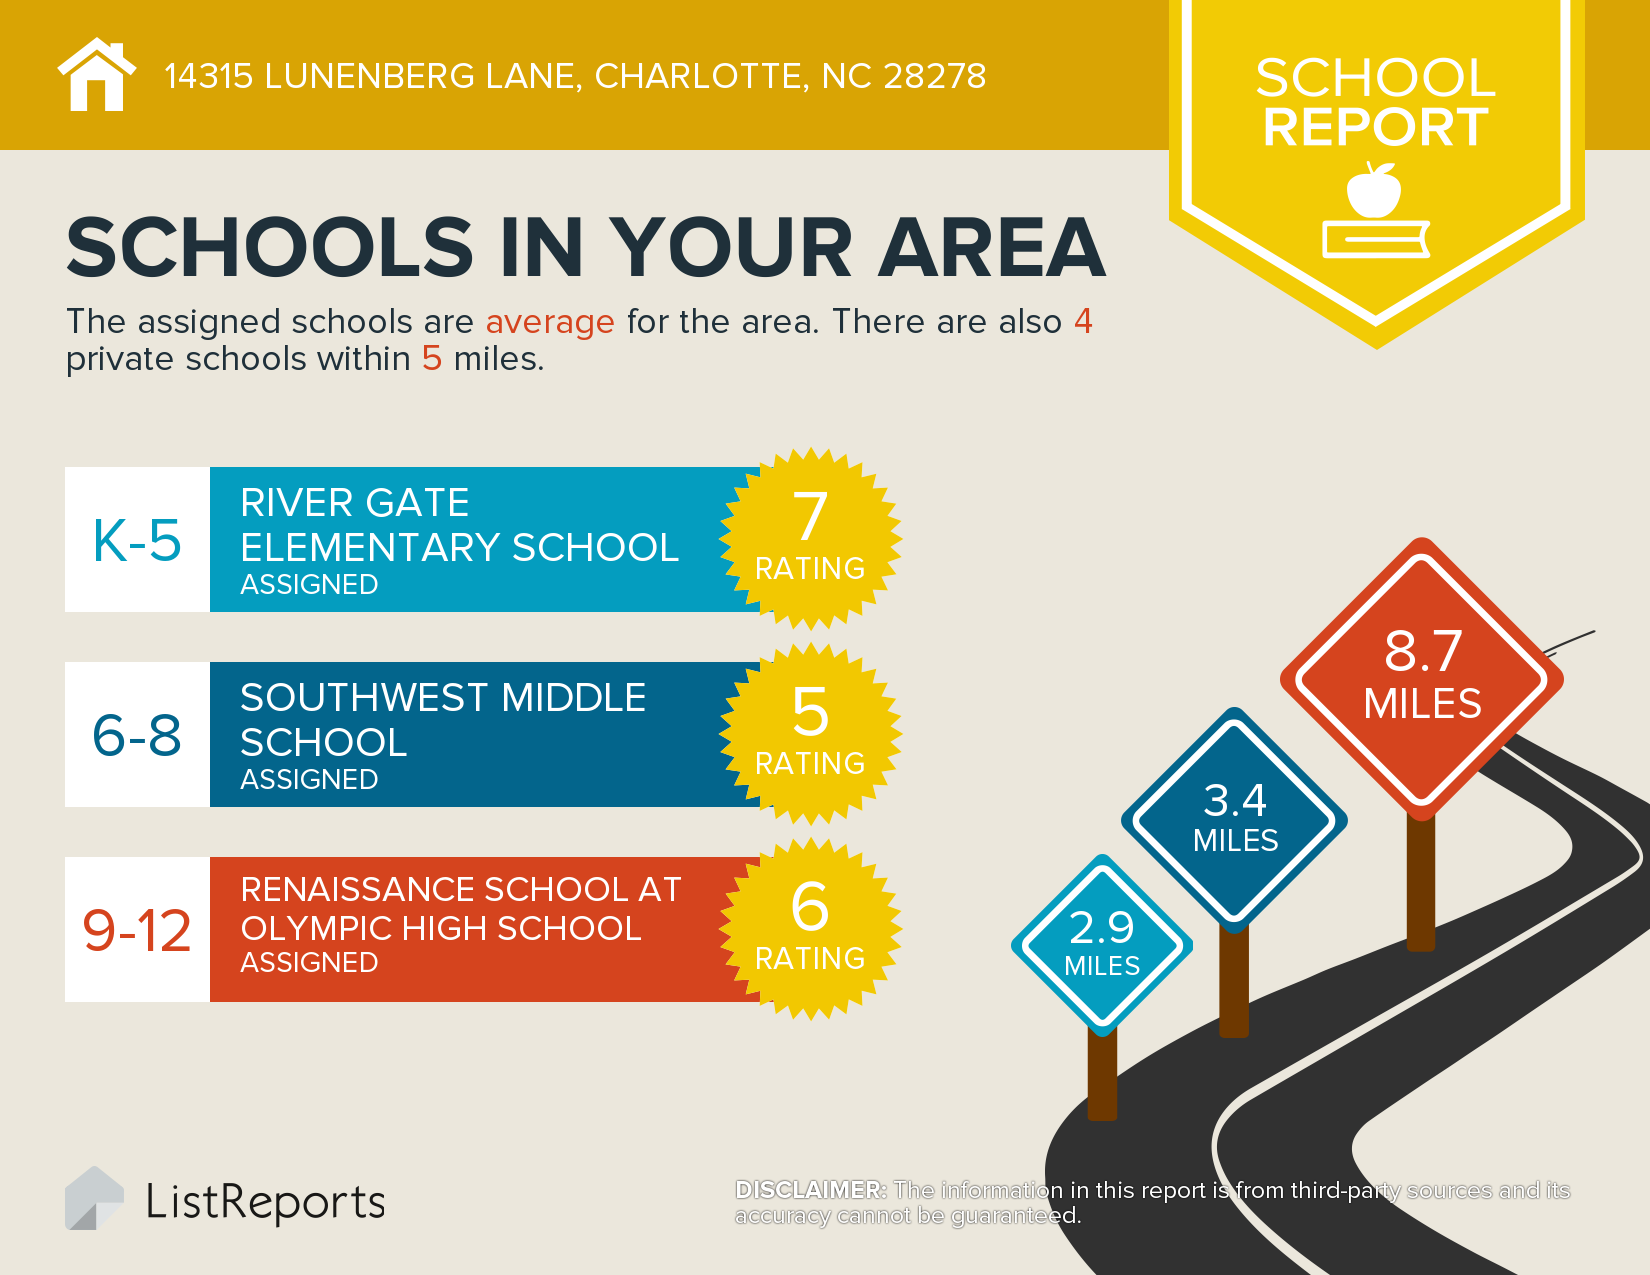 School assignments for Creekshire in southwest Charlotte, NC